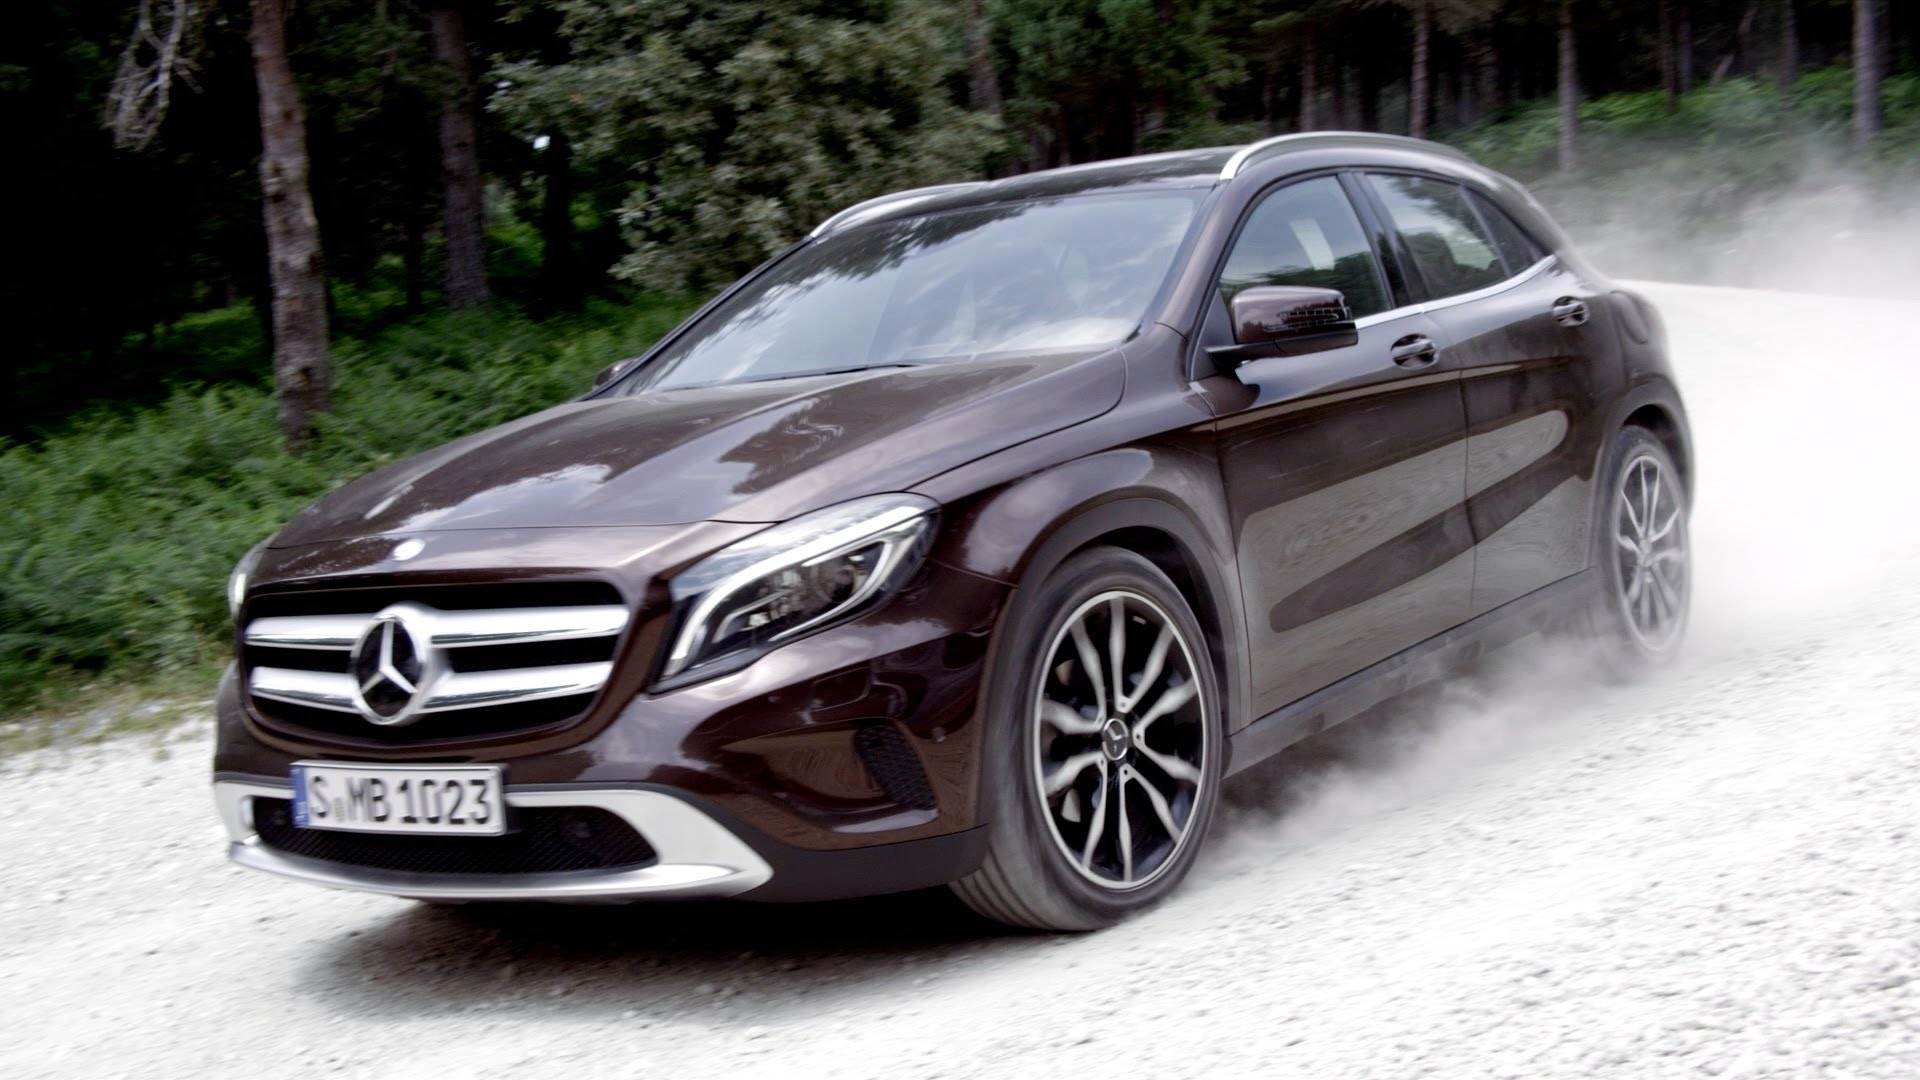 mercedes gla pictures #14